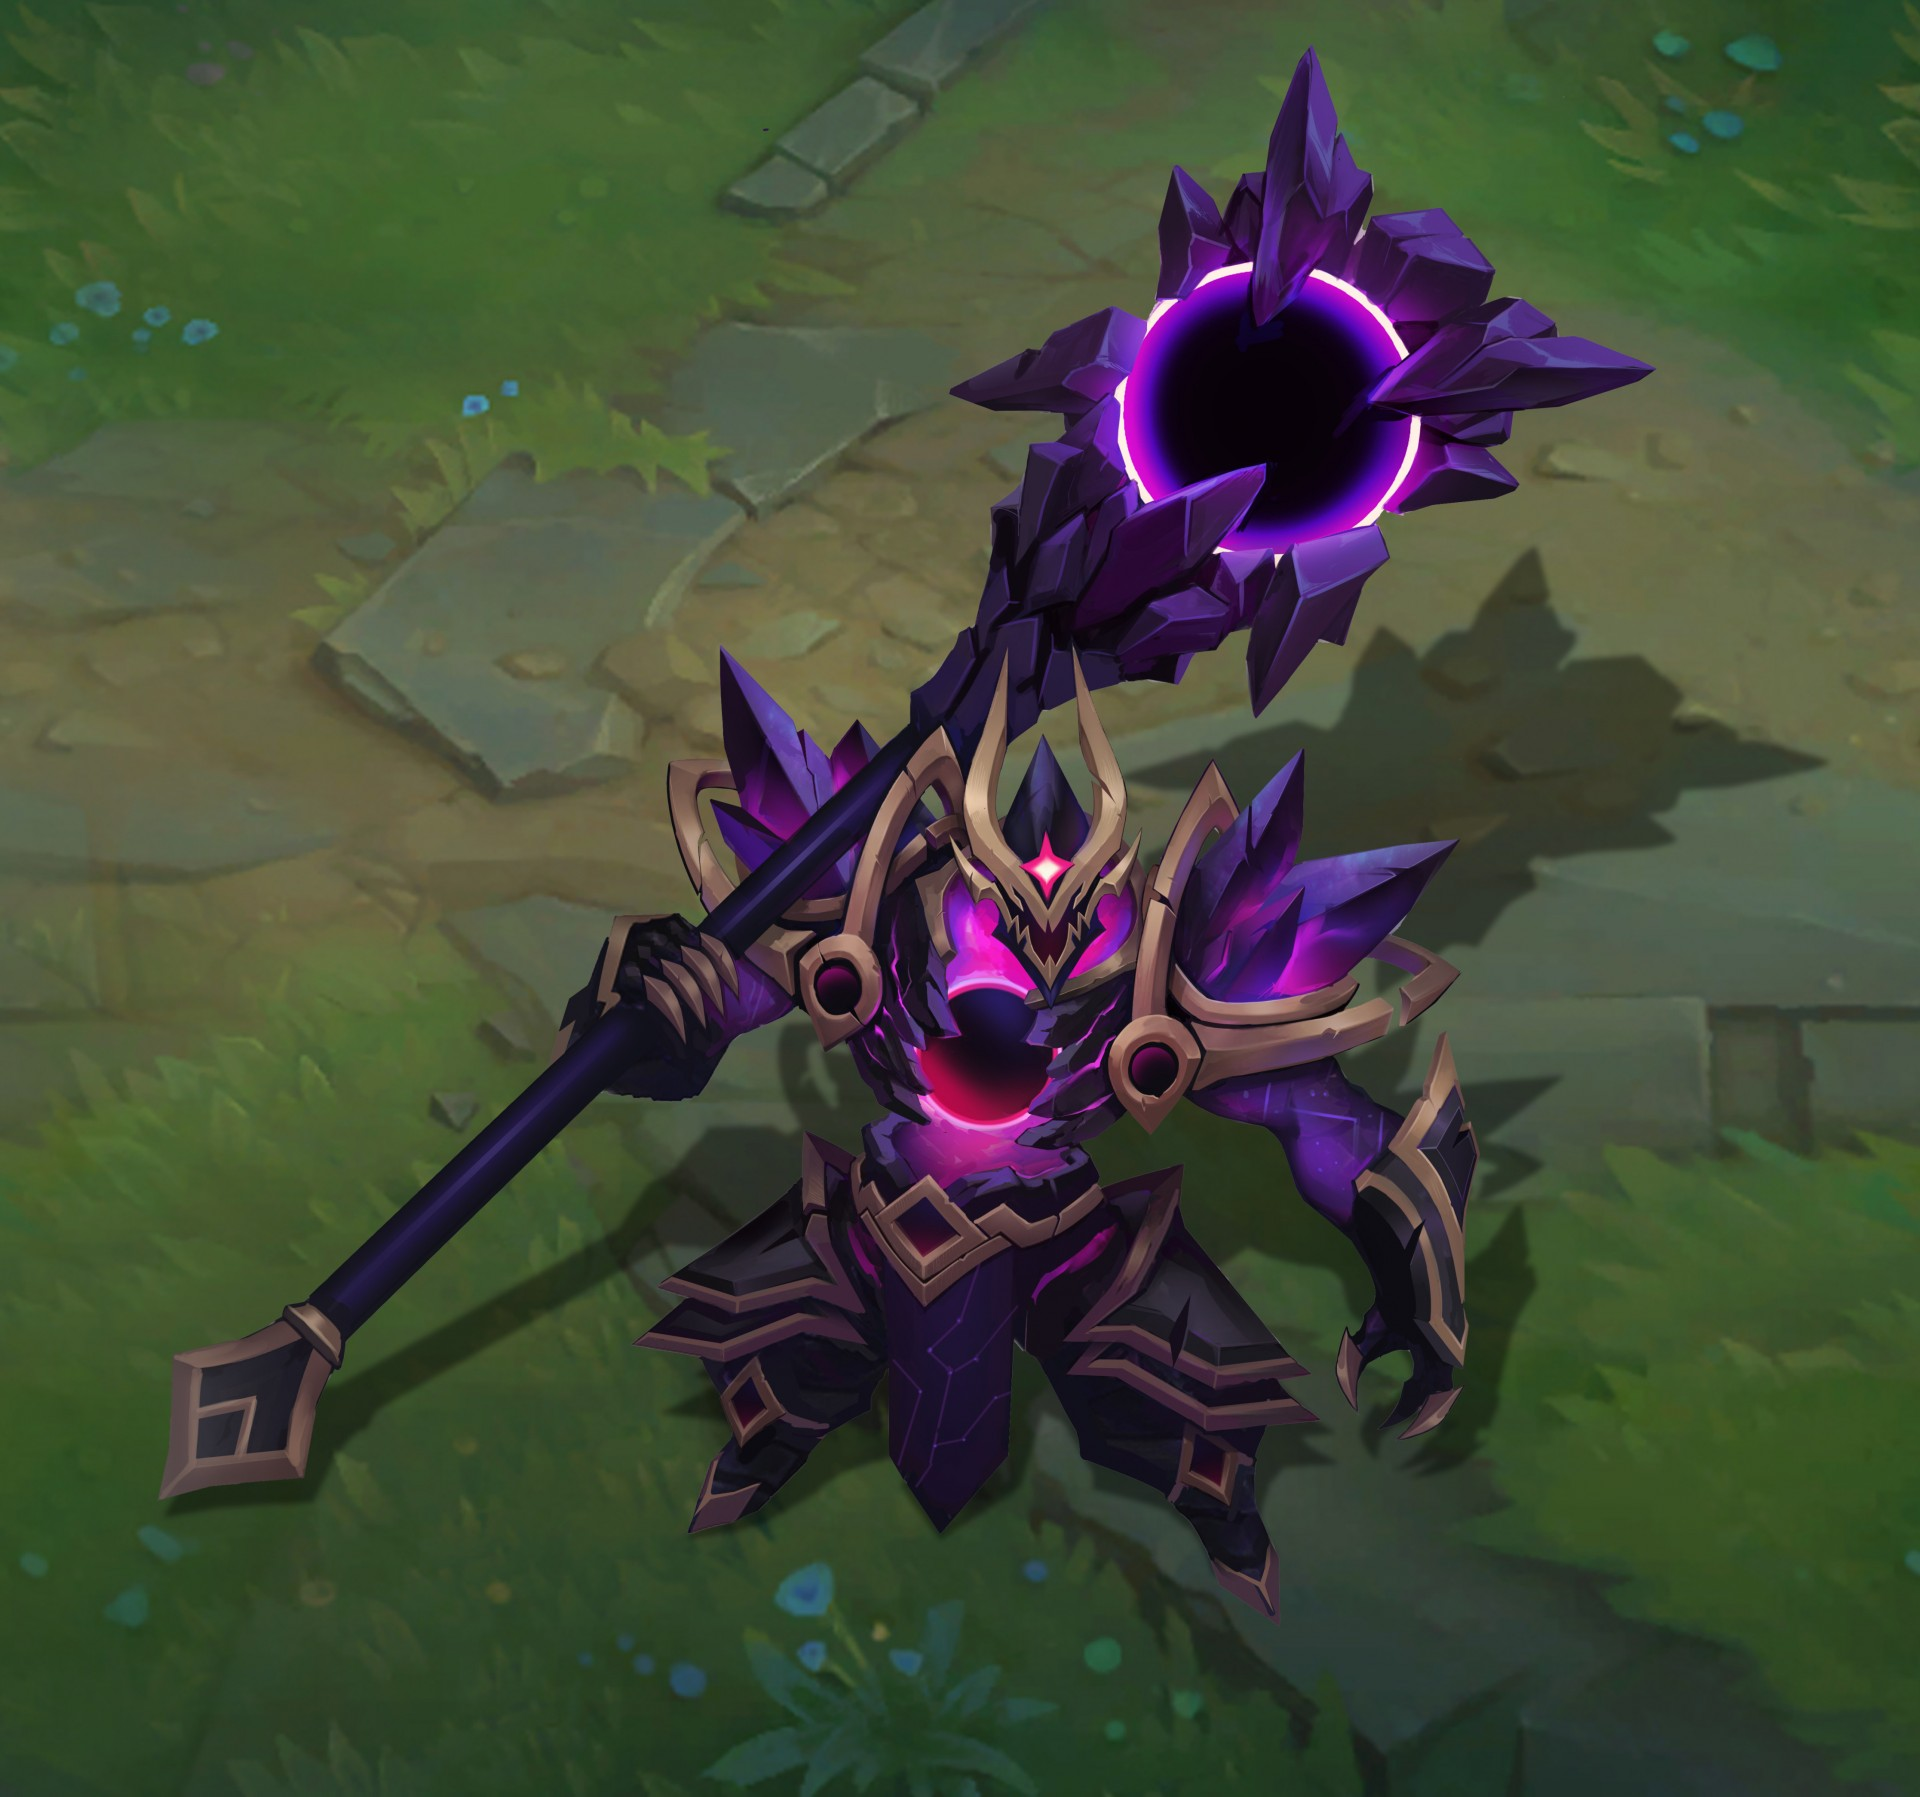 super populärt Storbritannien kostar charm Over 120 skins will be added to League of Legends this year and ...